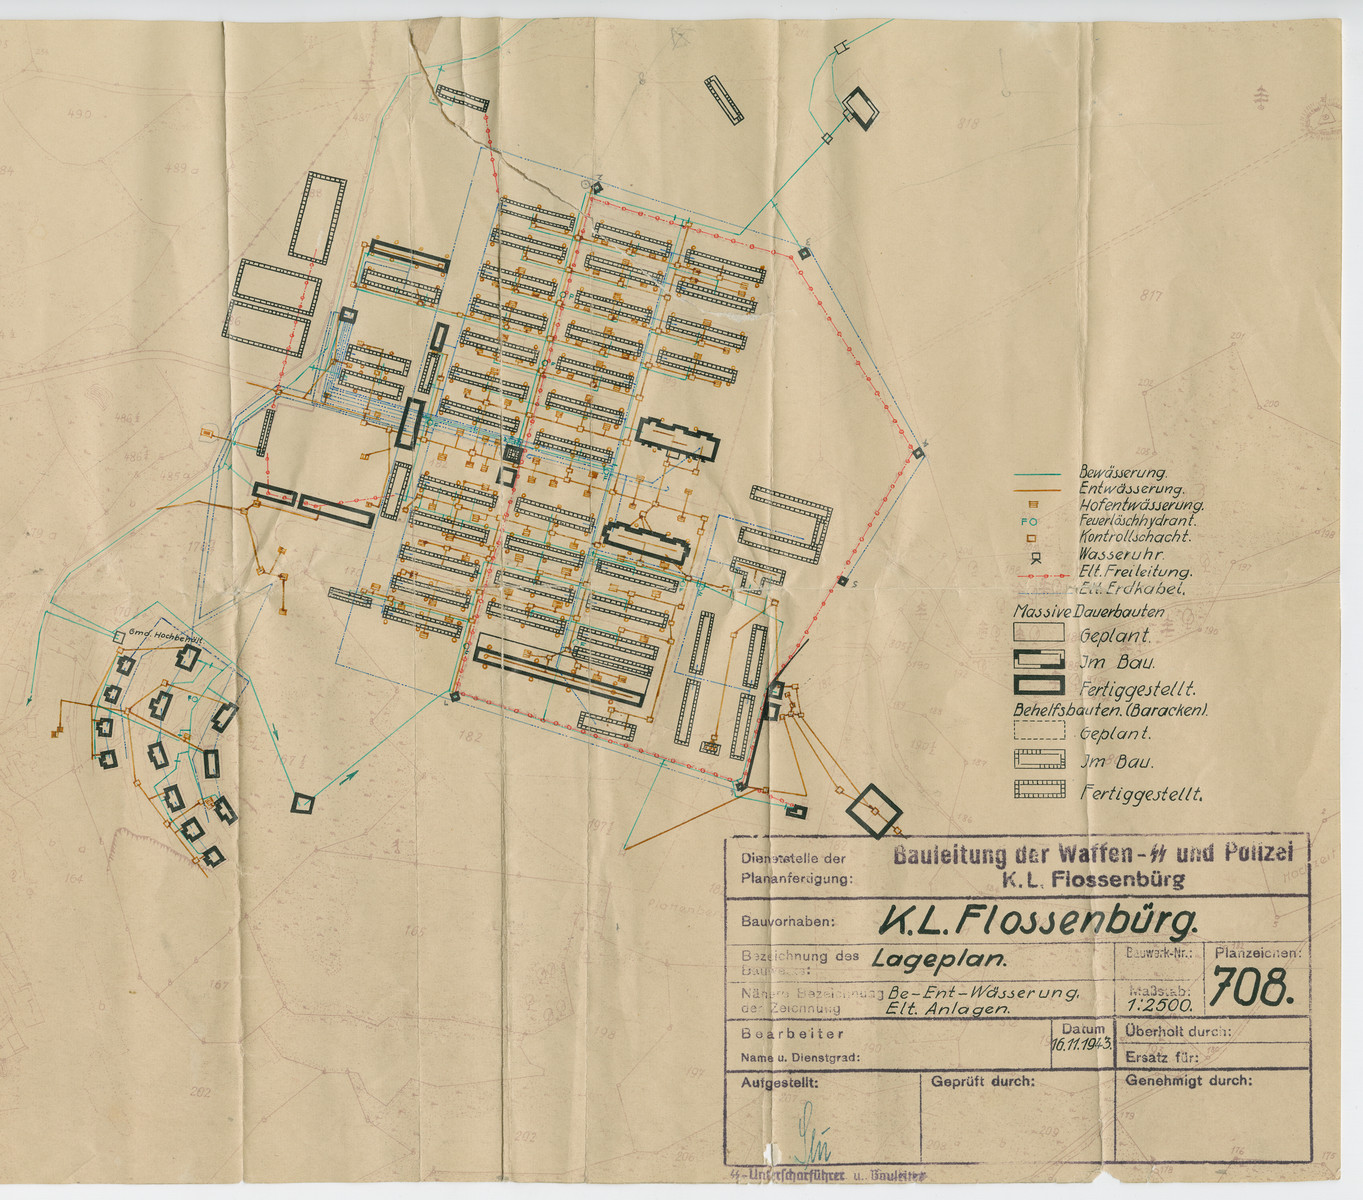 Map of the Flossenbuerg concentration camp.